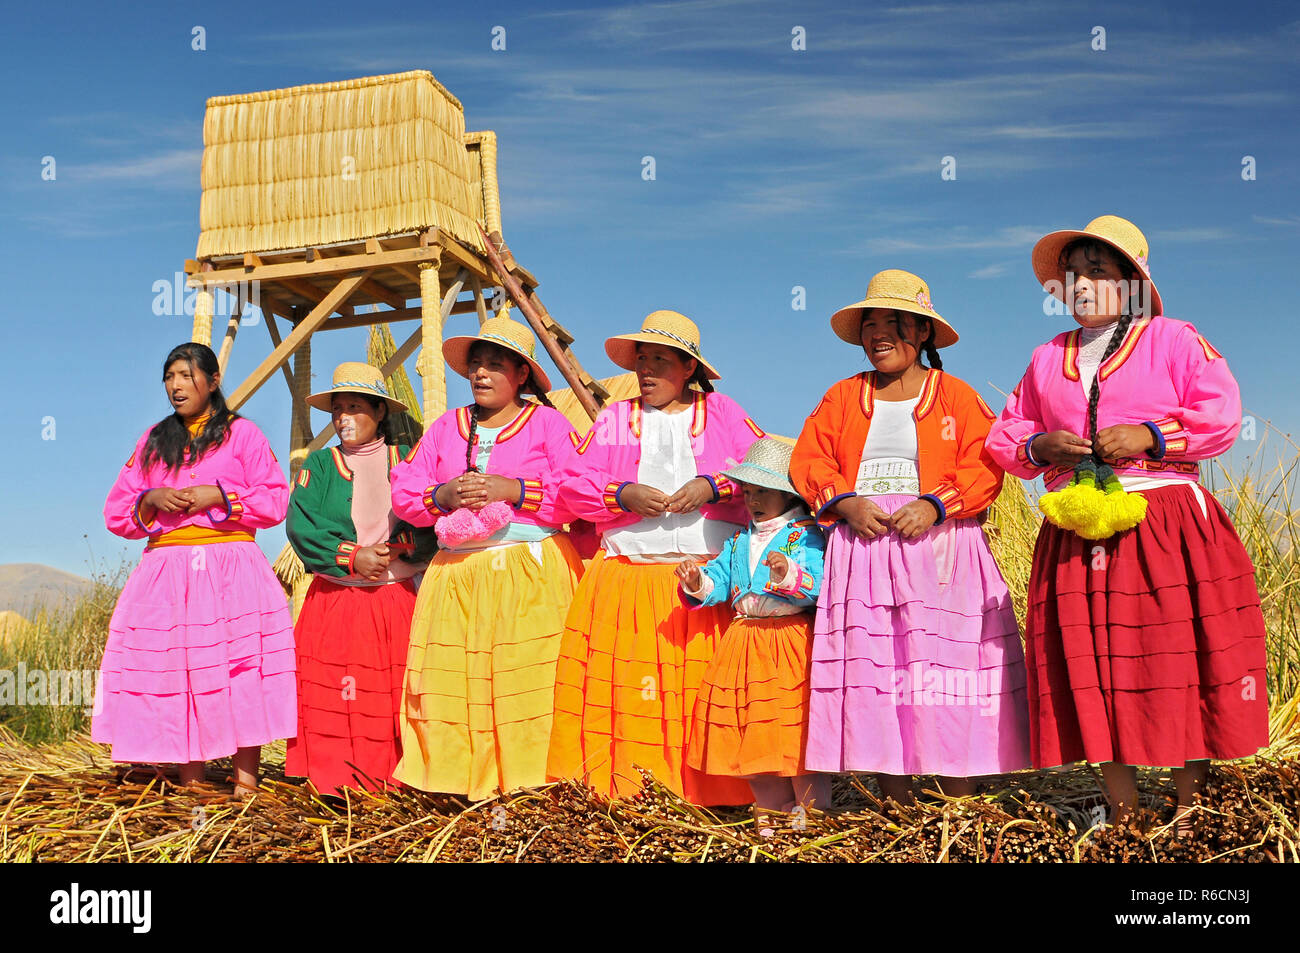 Uros Indian On Floating Island Titicaca Lake, Peru, South America - Stock Image